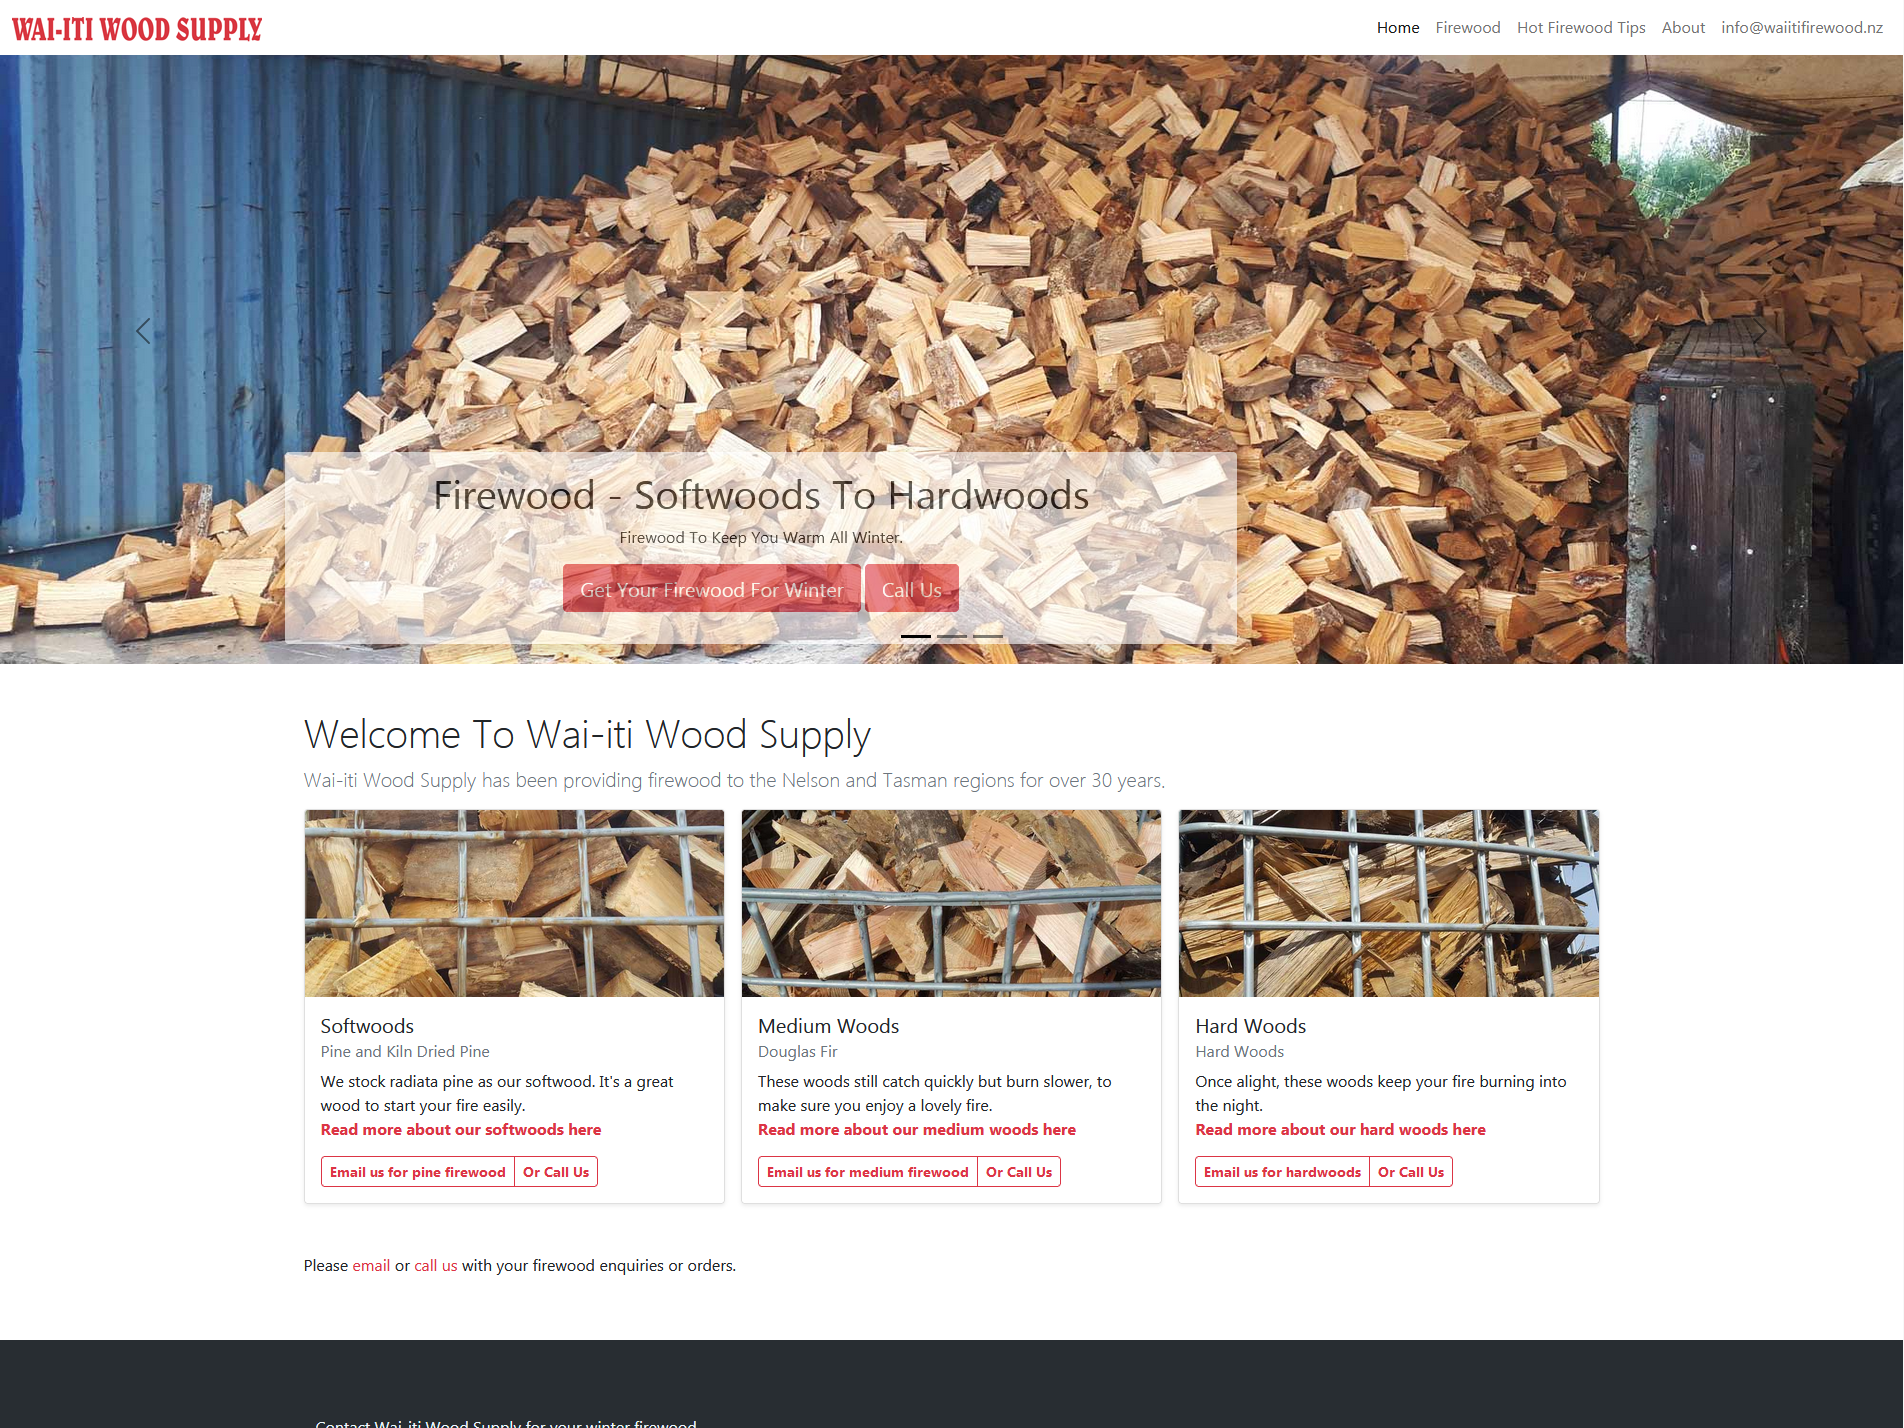 Wai-iti Wood Supply, firewood for Motueka and Nelson